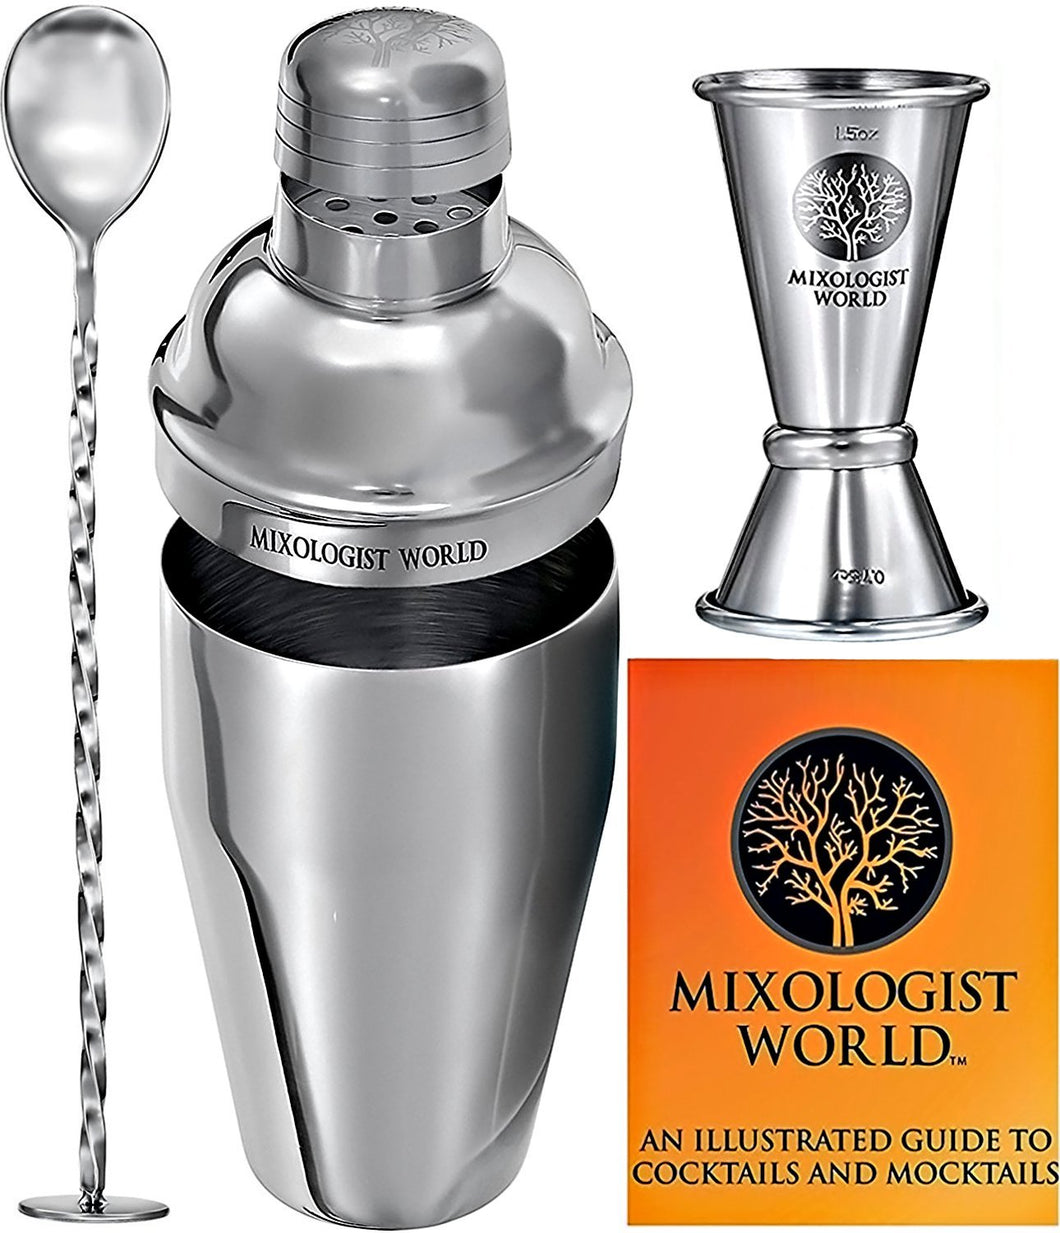 Professional Cocktail Shaker Bar Set by MIXOLOGIST WORLD - Bartender Tools Accessories - 24oz Martini Kit Built-in Strainer with Double Jigger and Mixing Spoon 18 Drink Recipes Home Party Guide Book